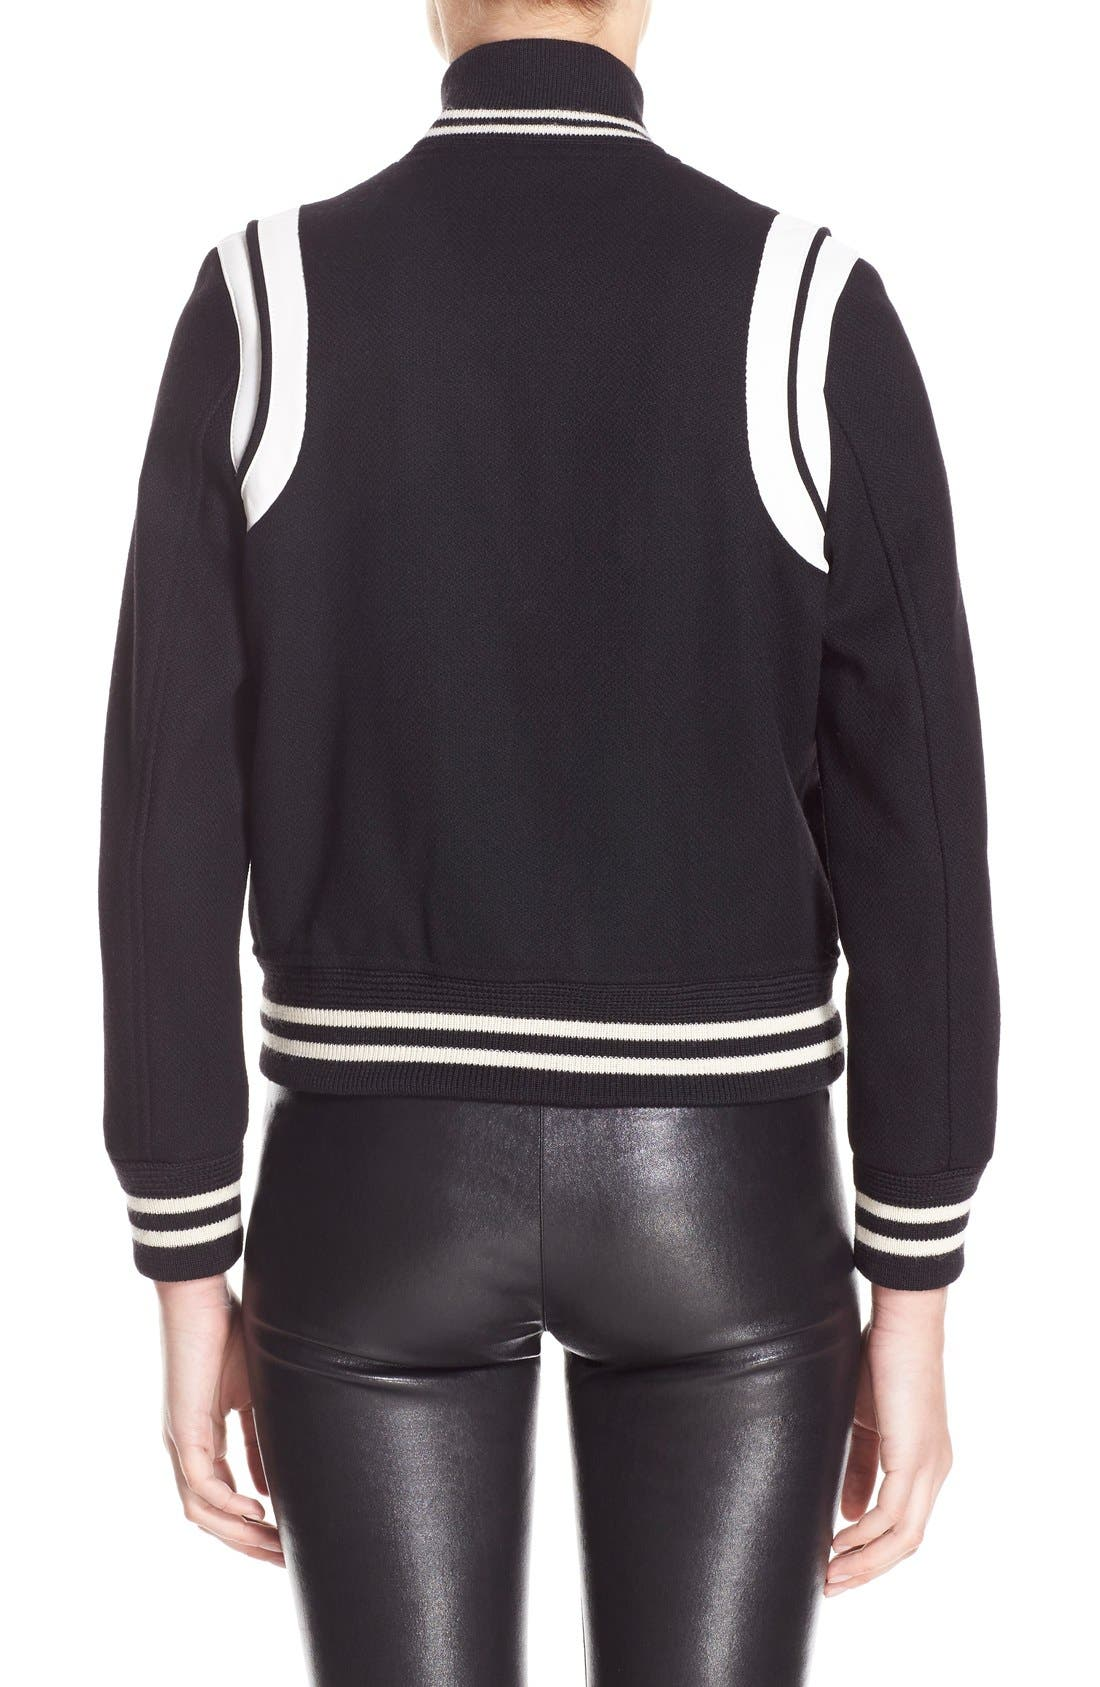 'Teddy' White Leather Trim Bomber Jacket,                             Alternate thumbnail 3, color,                             BLACK WHITE